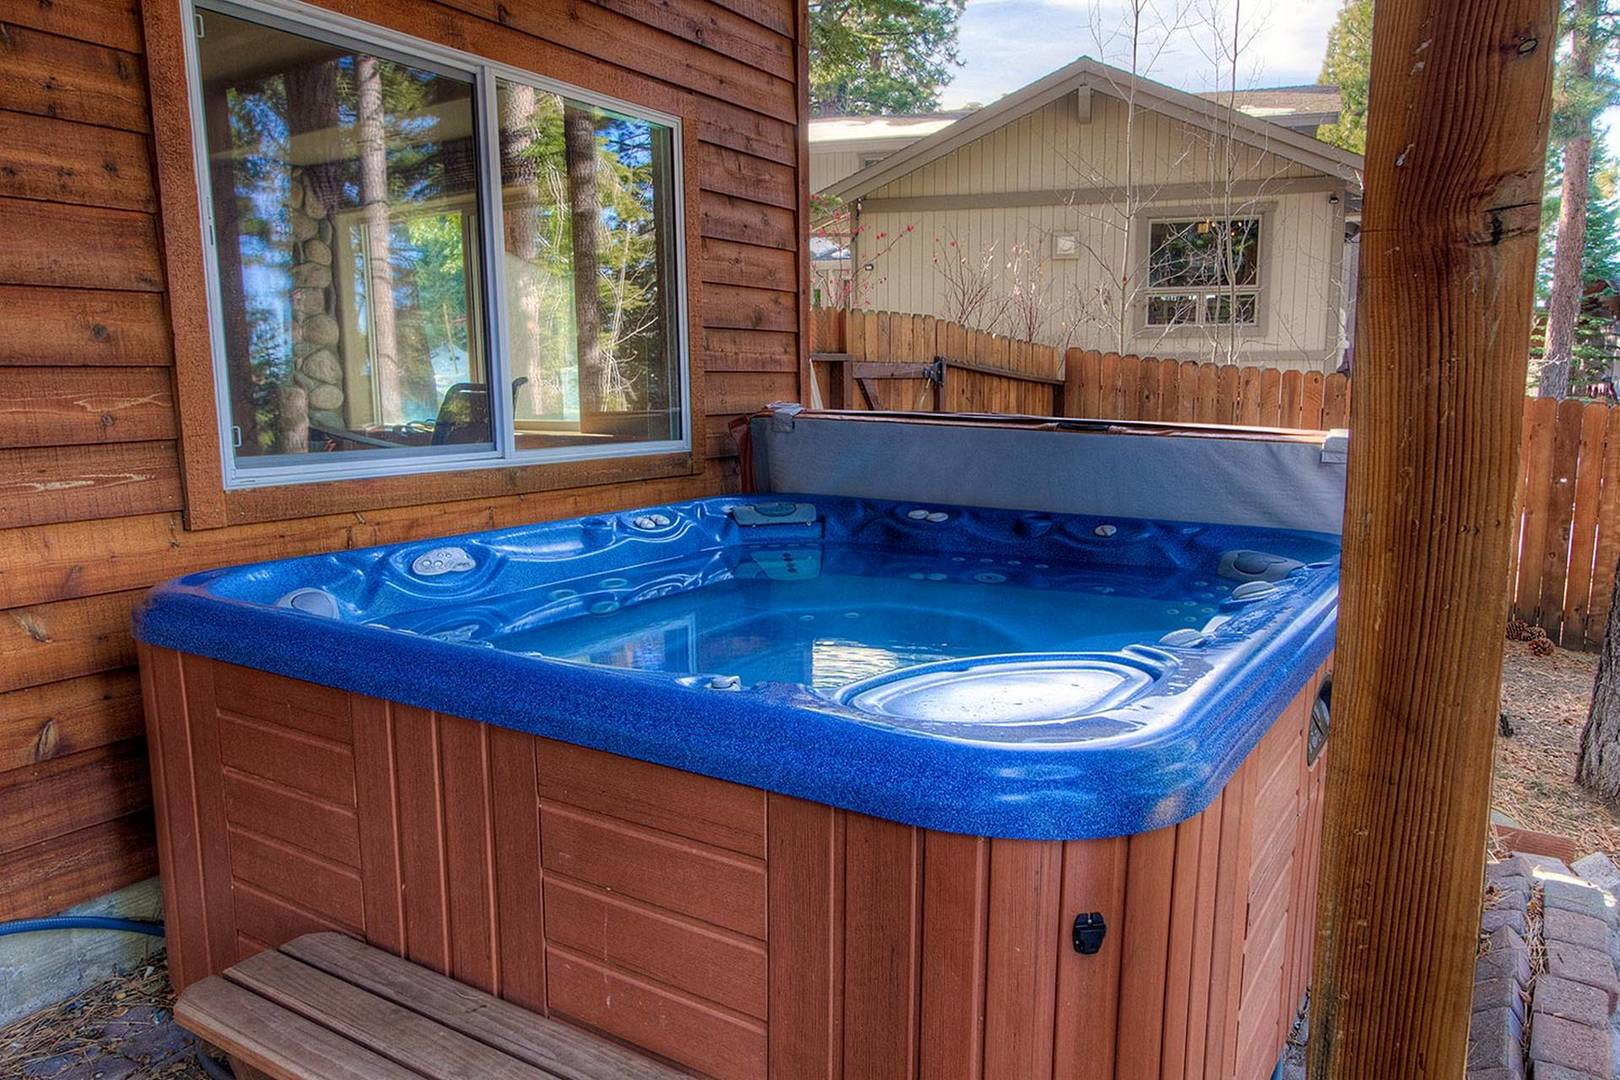 hch1435 hot tub